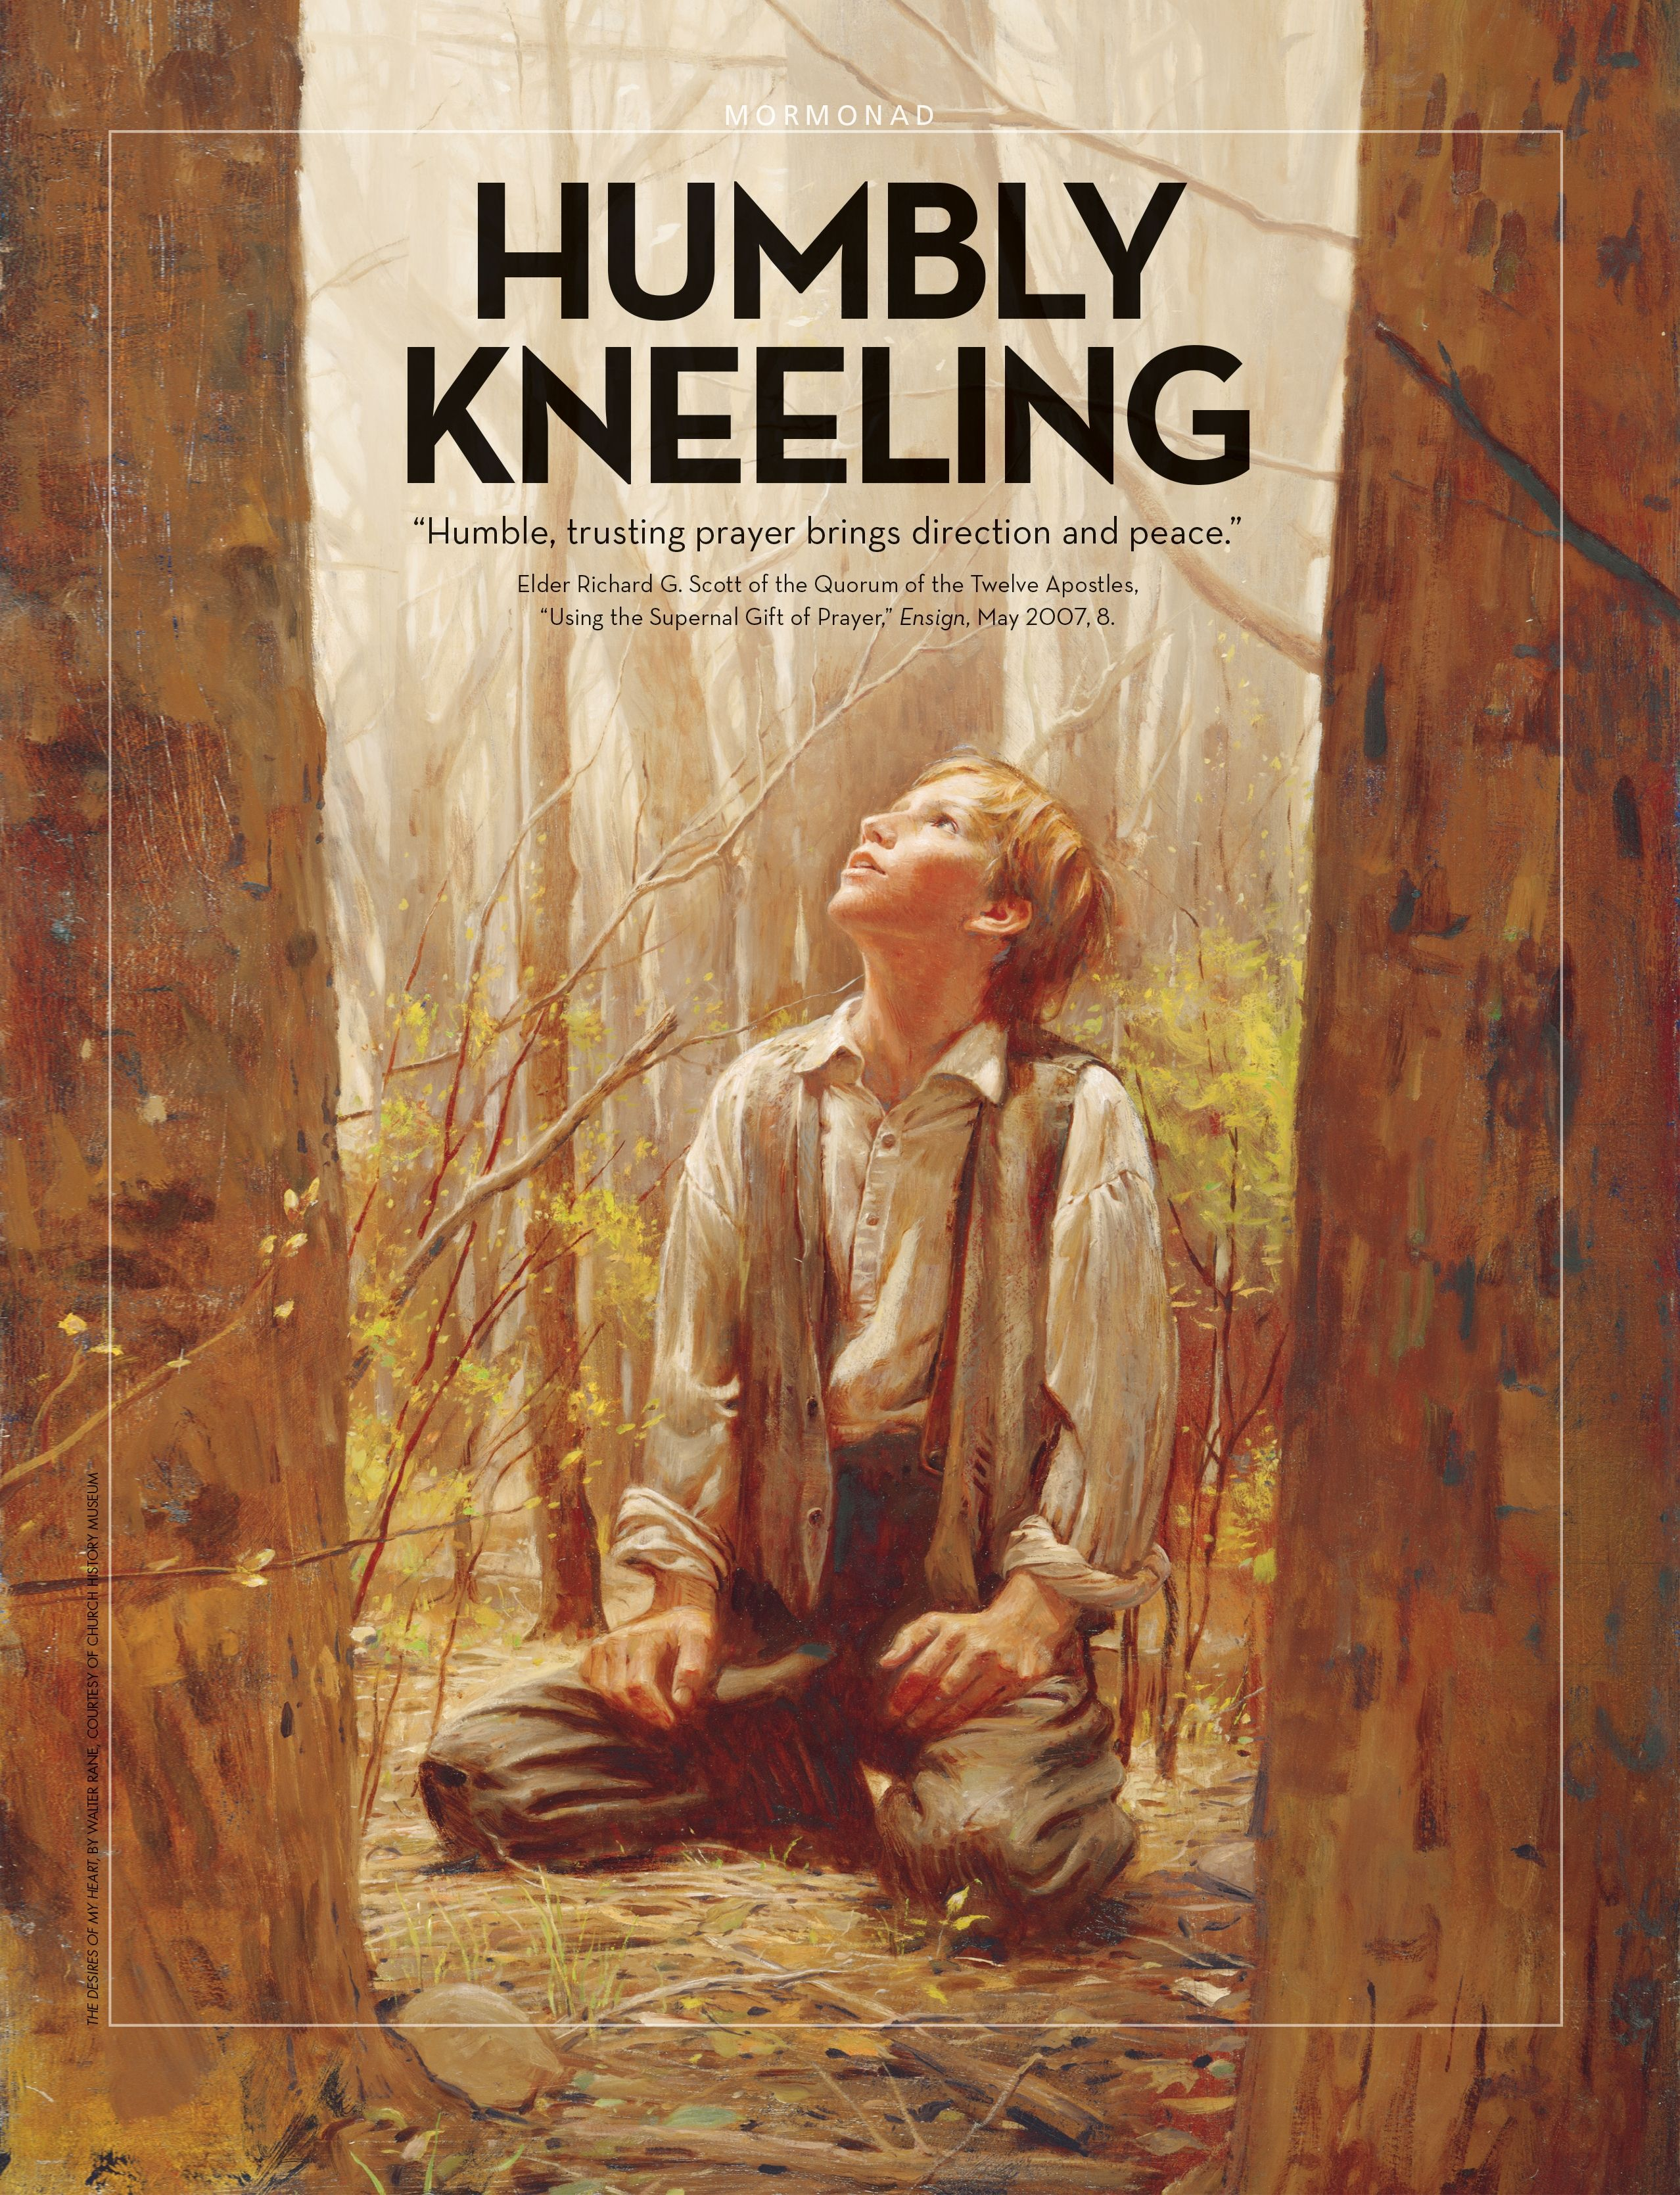 """Humbly Kneeling. """"Humble, trusting prayer brings direction and peace."""" Elder Richard G. Scott of the Quorum of the Twelve Apostles, """"Using the Supernal Gift of Prayer,"""" Ensign, May 2007, 8. June 2012"""